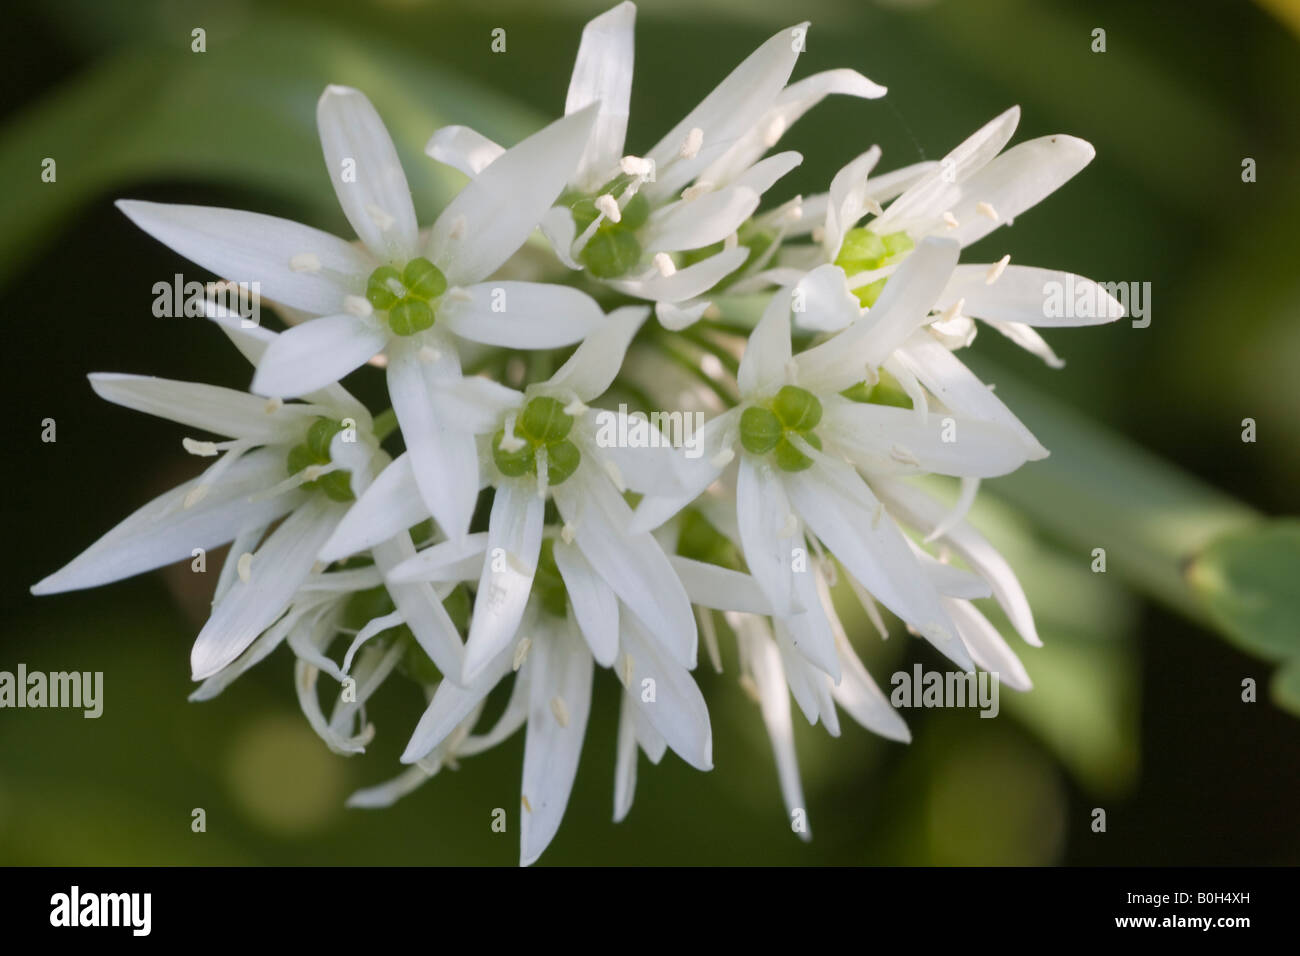 Garlic flowers stock photos garlic flowers stock images alamy closeup of the white flowers of a wild garlic allium ursinum the leaves are mightylinksfo